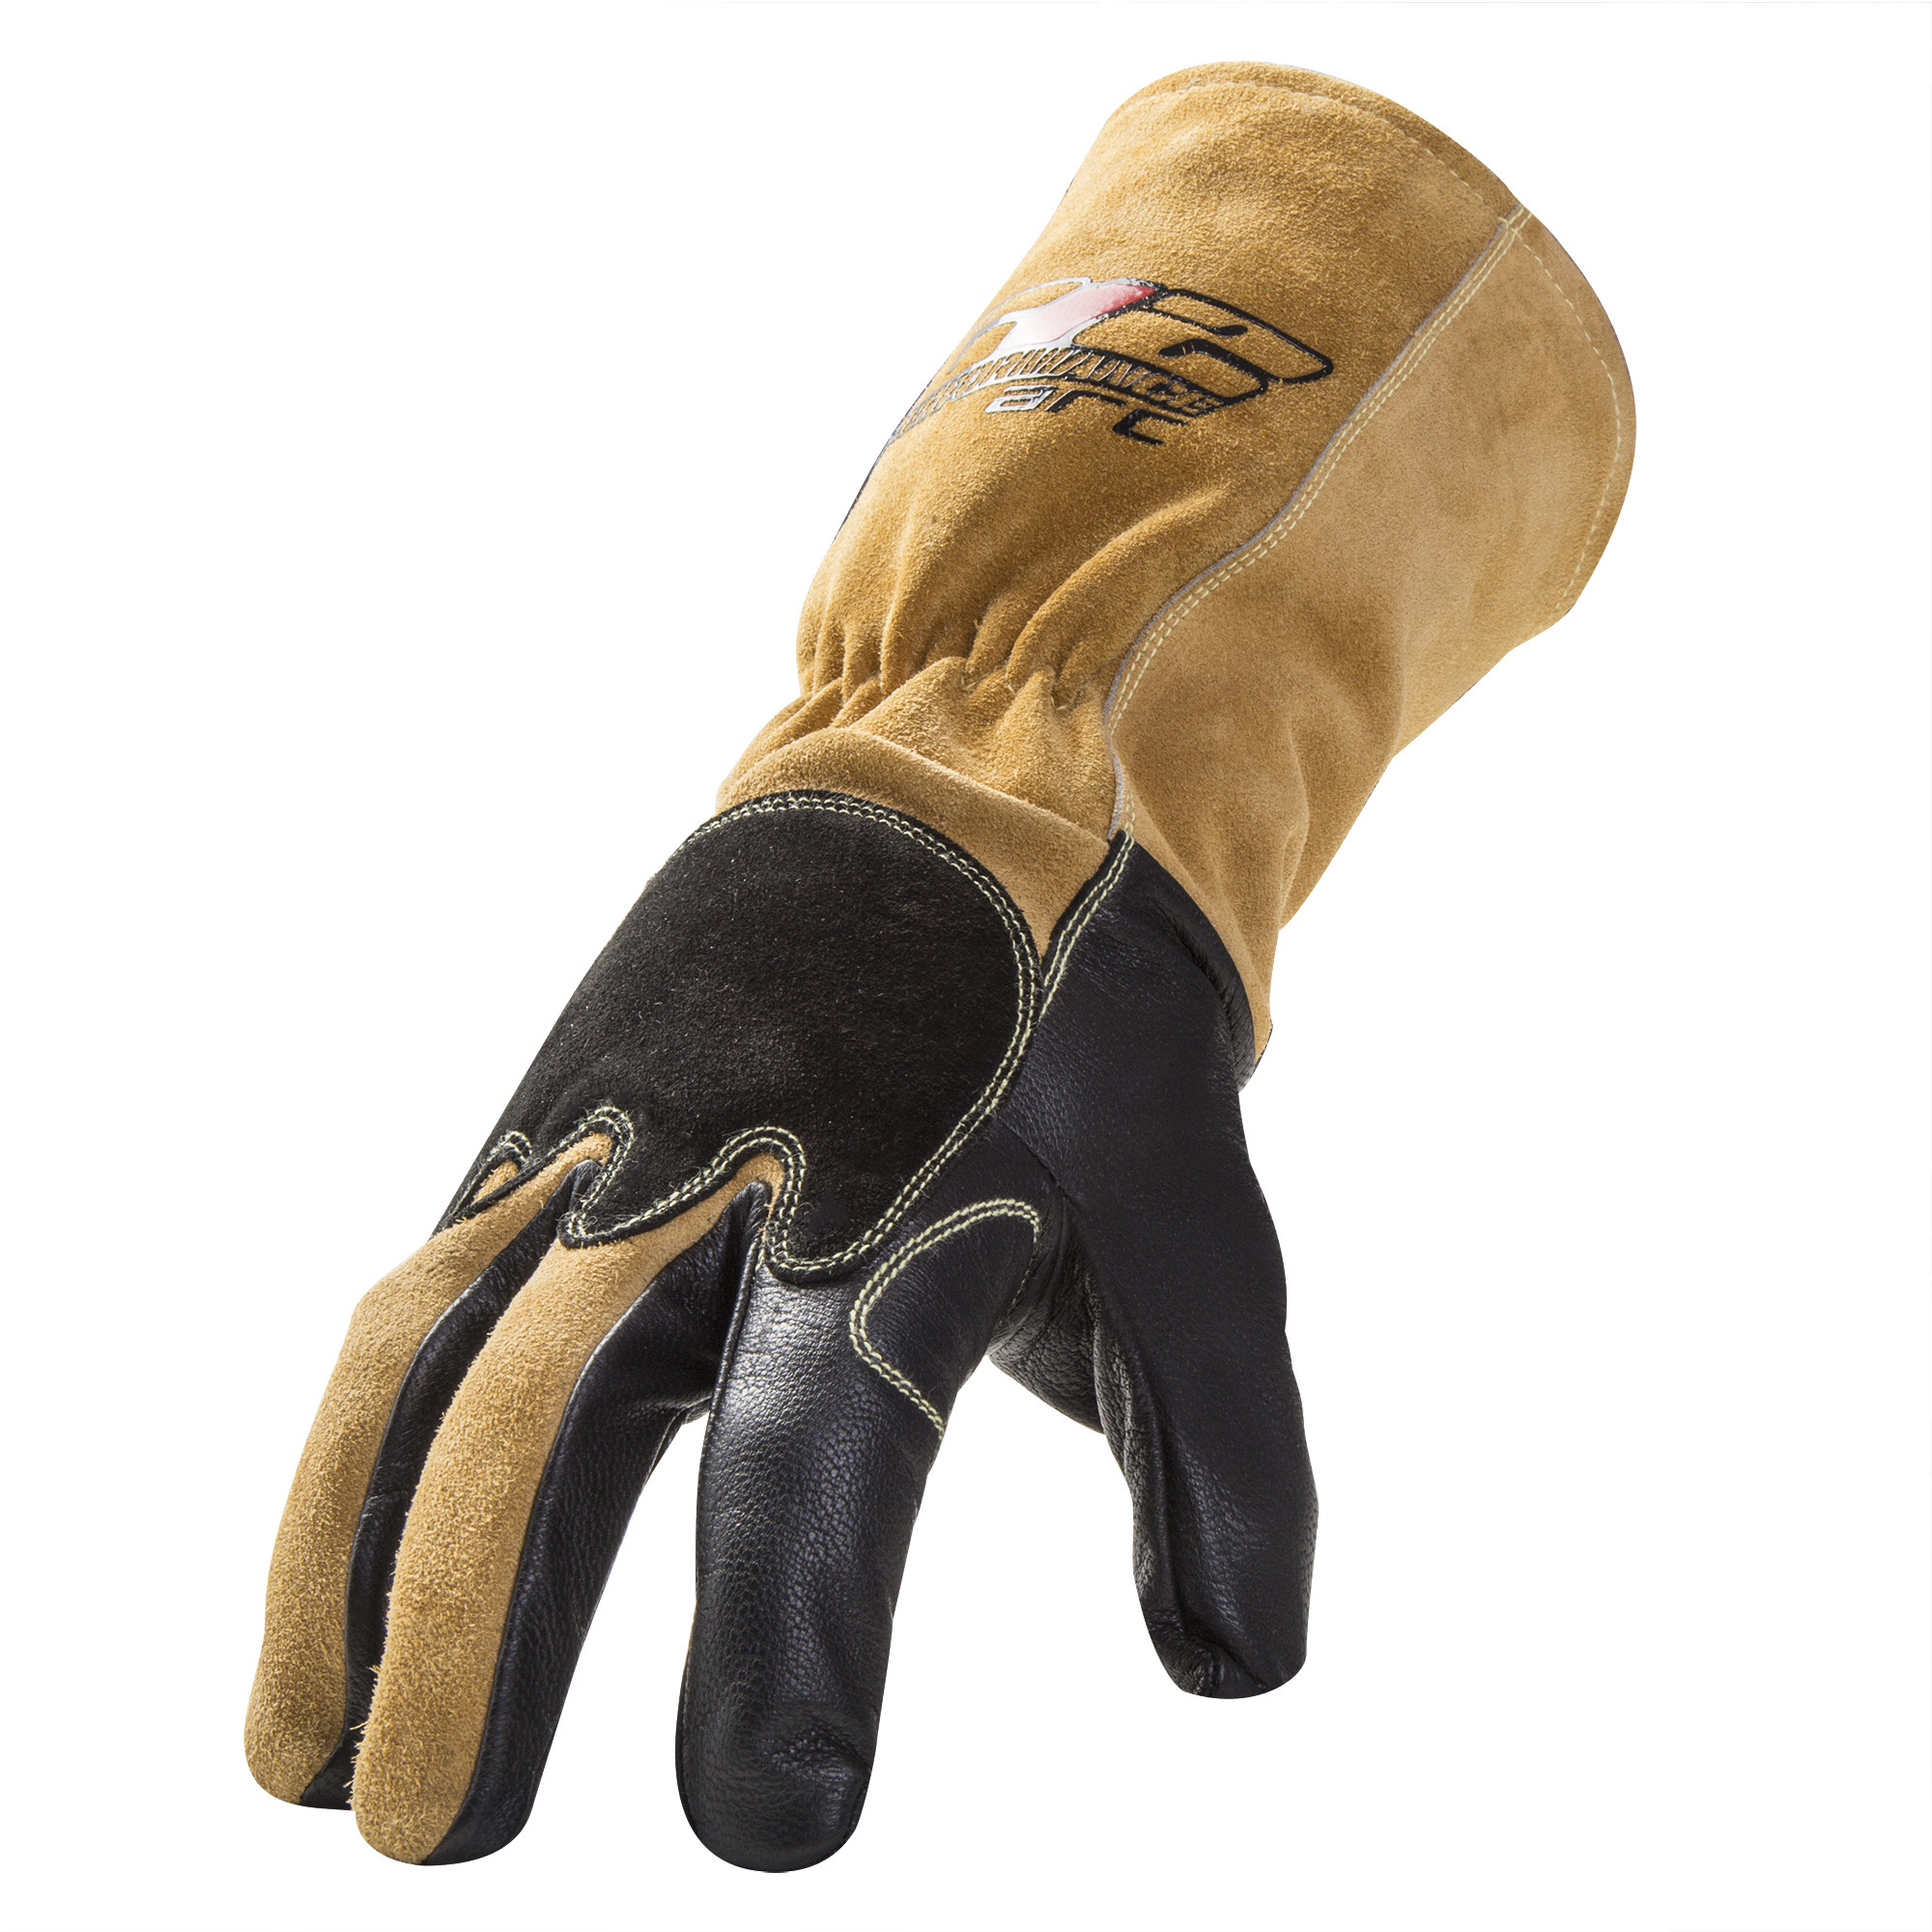 212 Performance Gloves ARCTIG-08-008 ARC Premium TIG Welding Gloves, Small